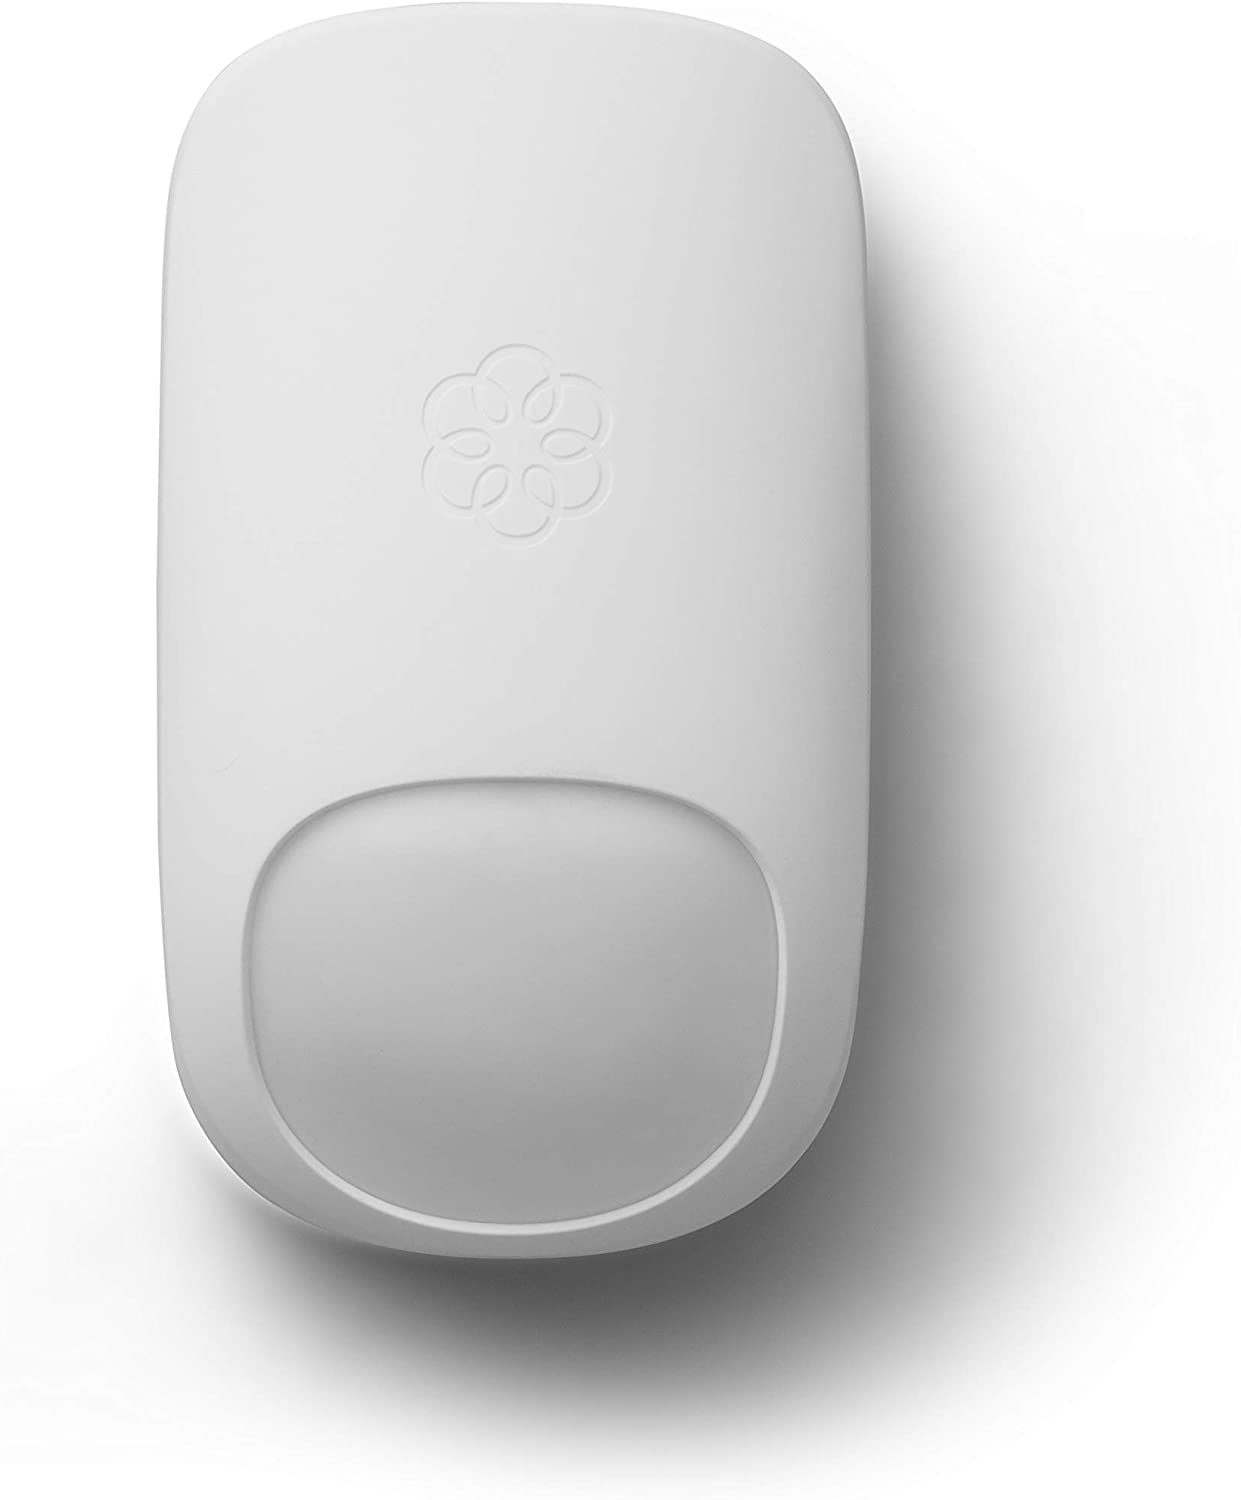 Ooma Motion Sensor, works with Ooma Smart Home Security. No contracts and free self-monitor plan. Optional professional monitoring, door/window, keypad, water sensor, and garage door sensor